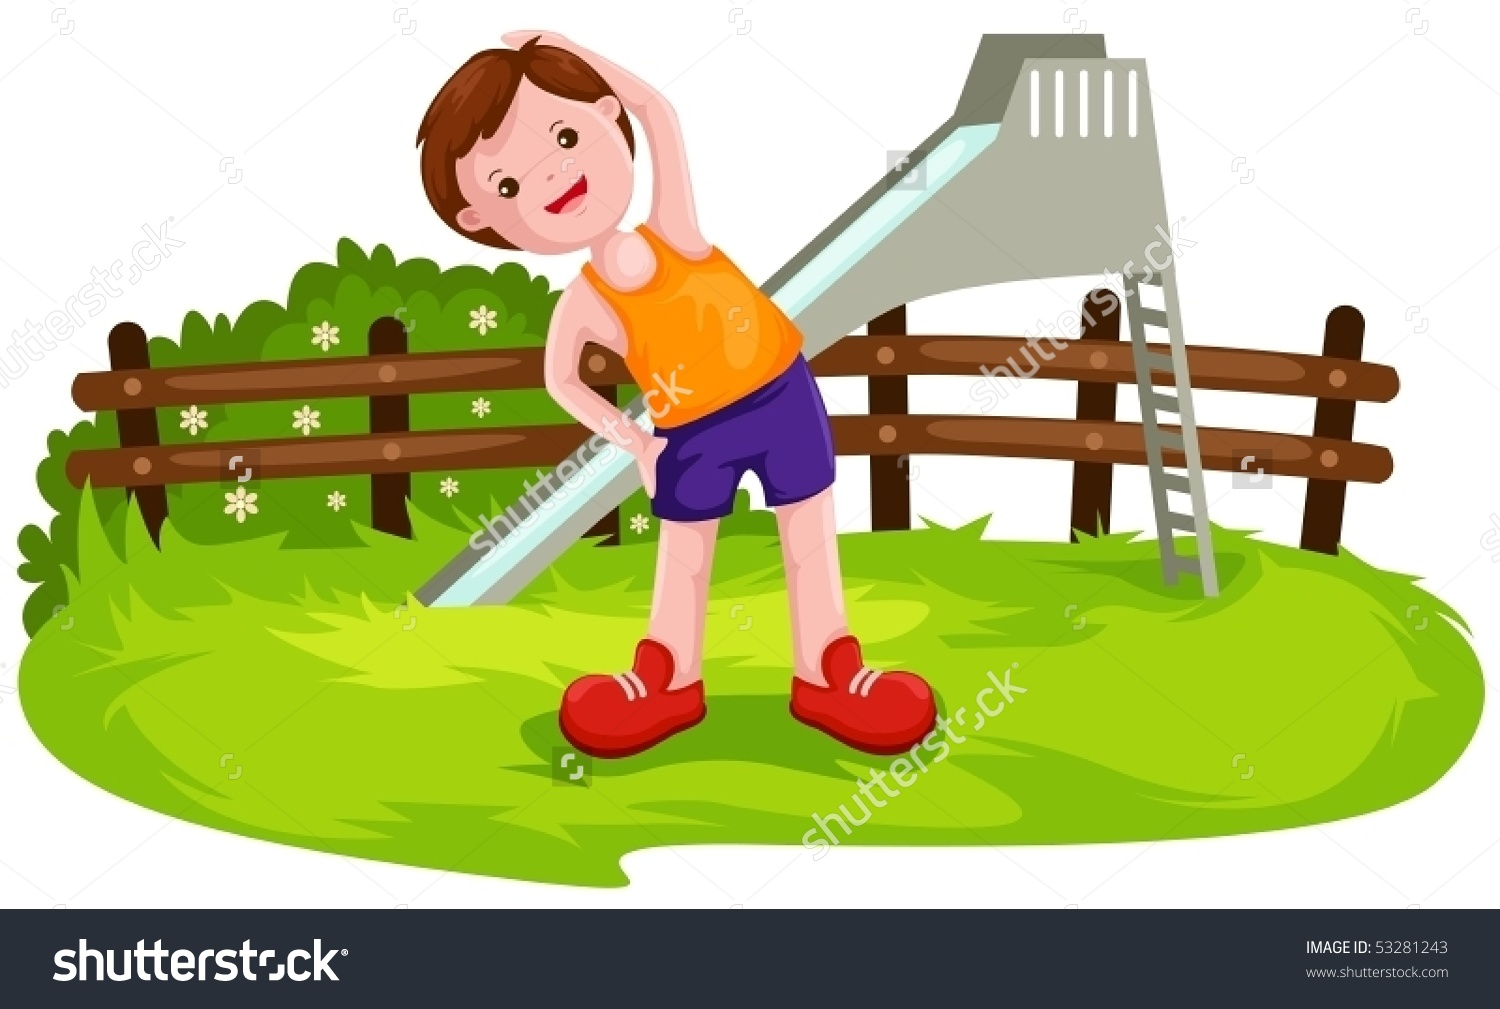 Illustration Cartoon Boy Exercise Park Stock Vector 53281243.